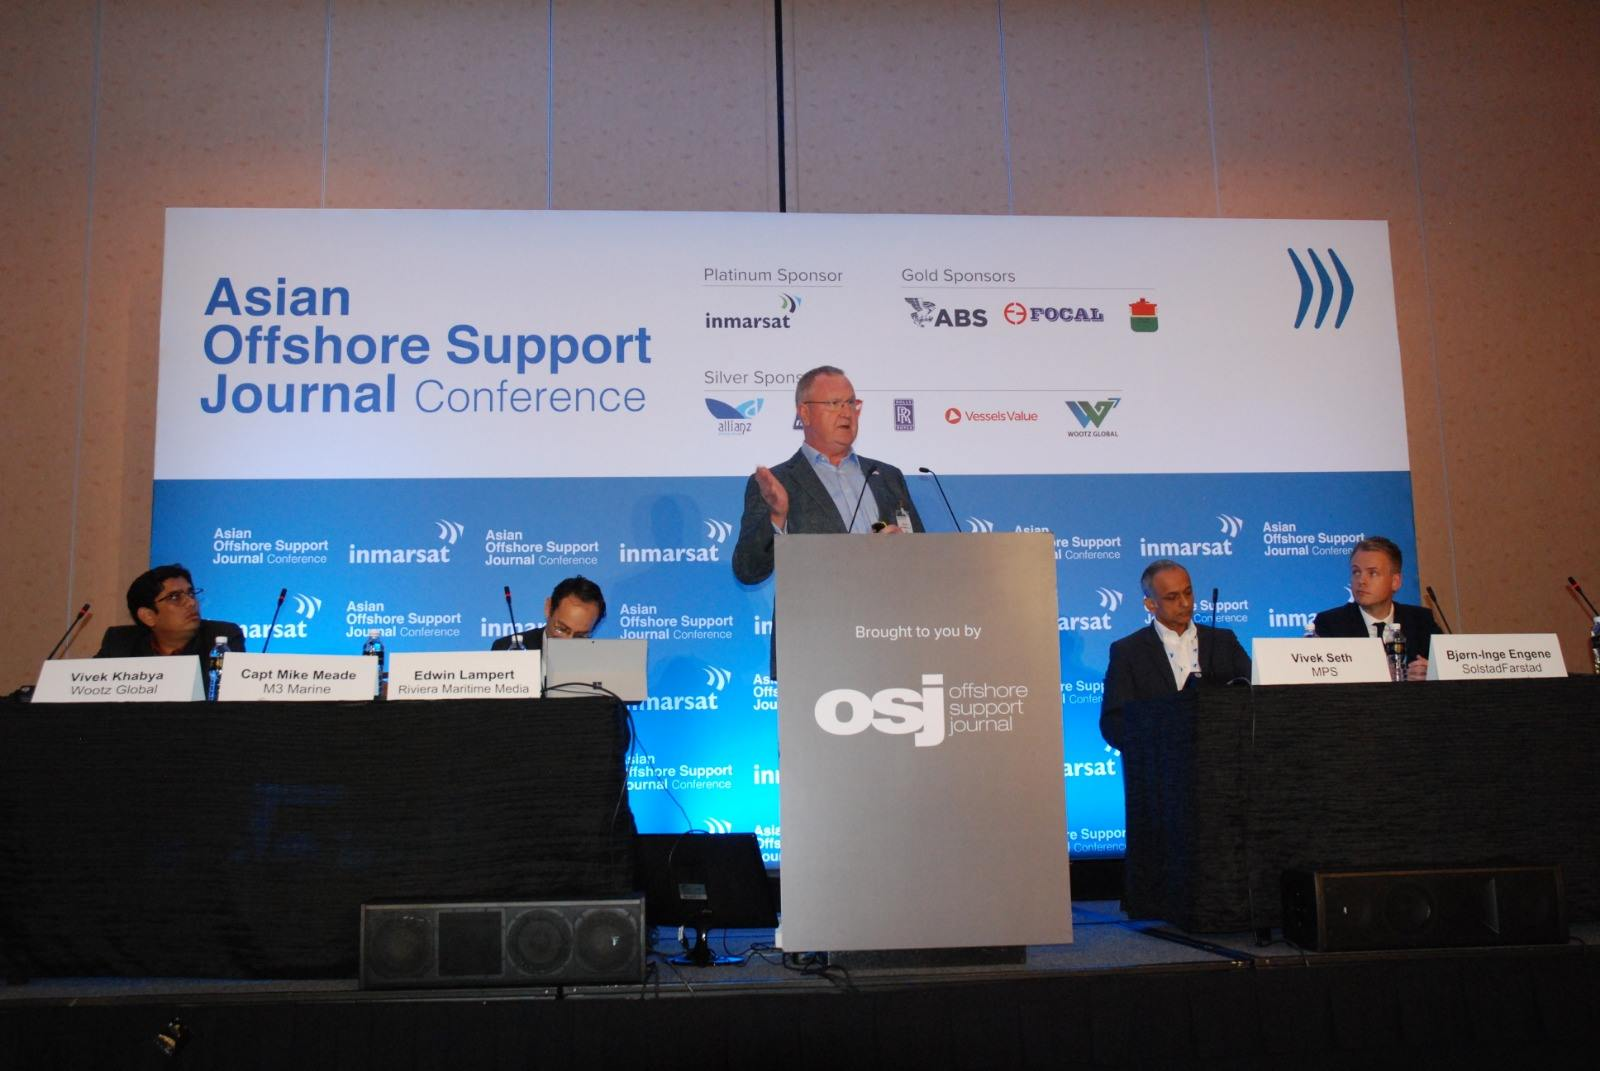 Asian Offshore Support Journal Conference 2018